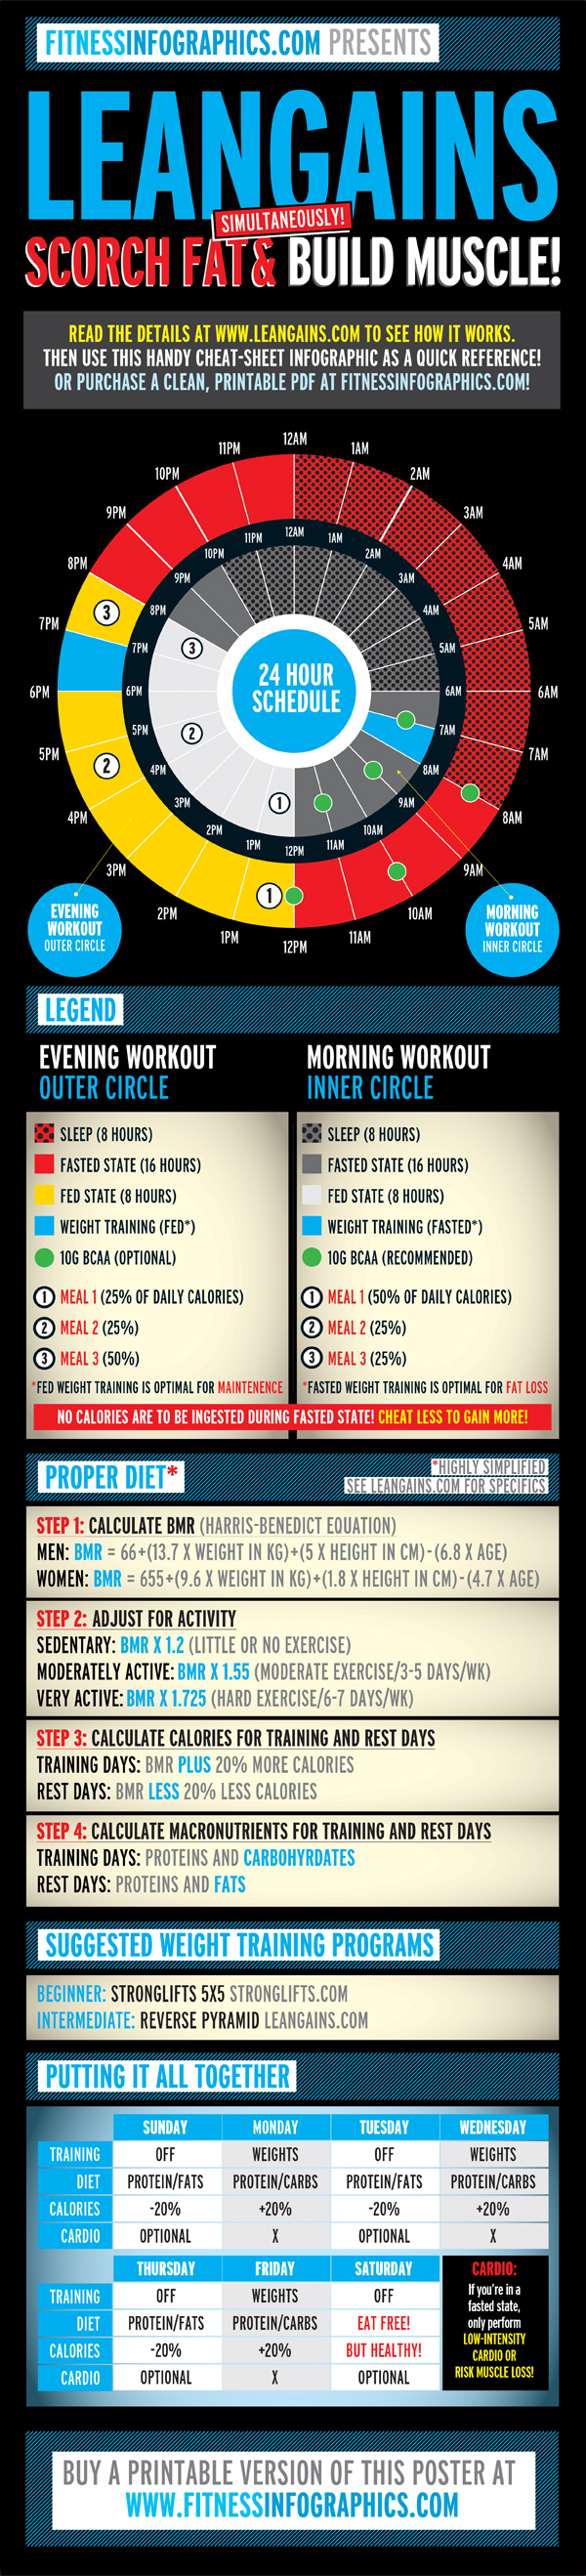 Also See Our Free Infographic On How To Use Leangains Stronglifts 5 And Paleo For A Complete T Exercise Regimen